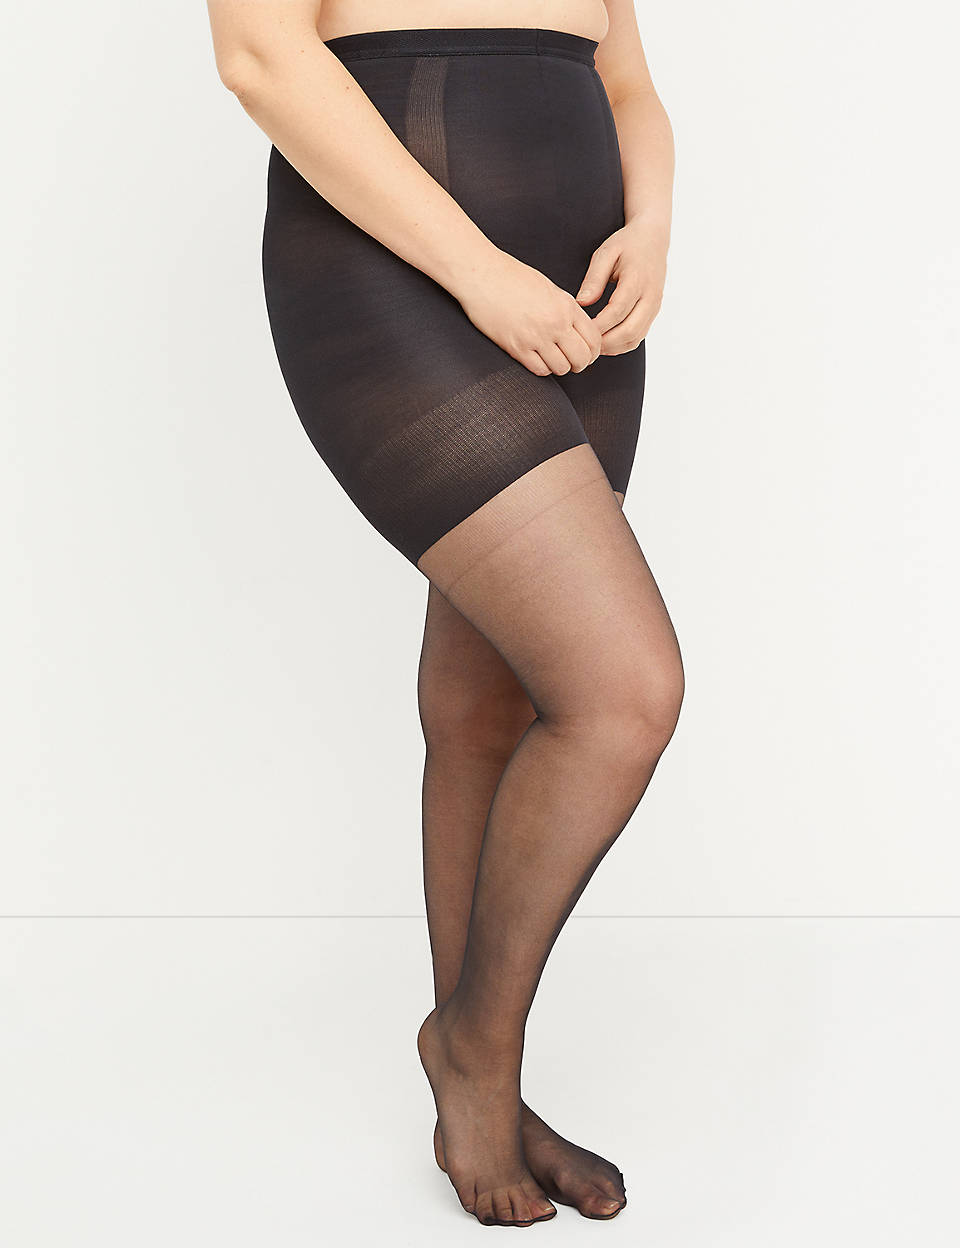 92310cfdc Smoothing Tights - Sheer Shaper